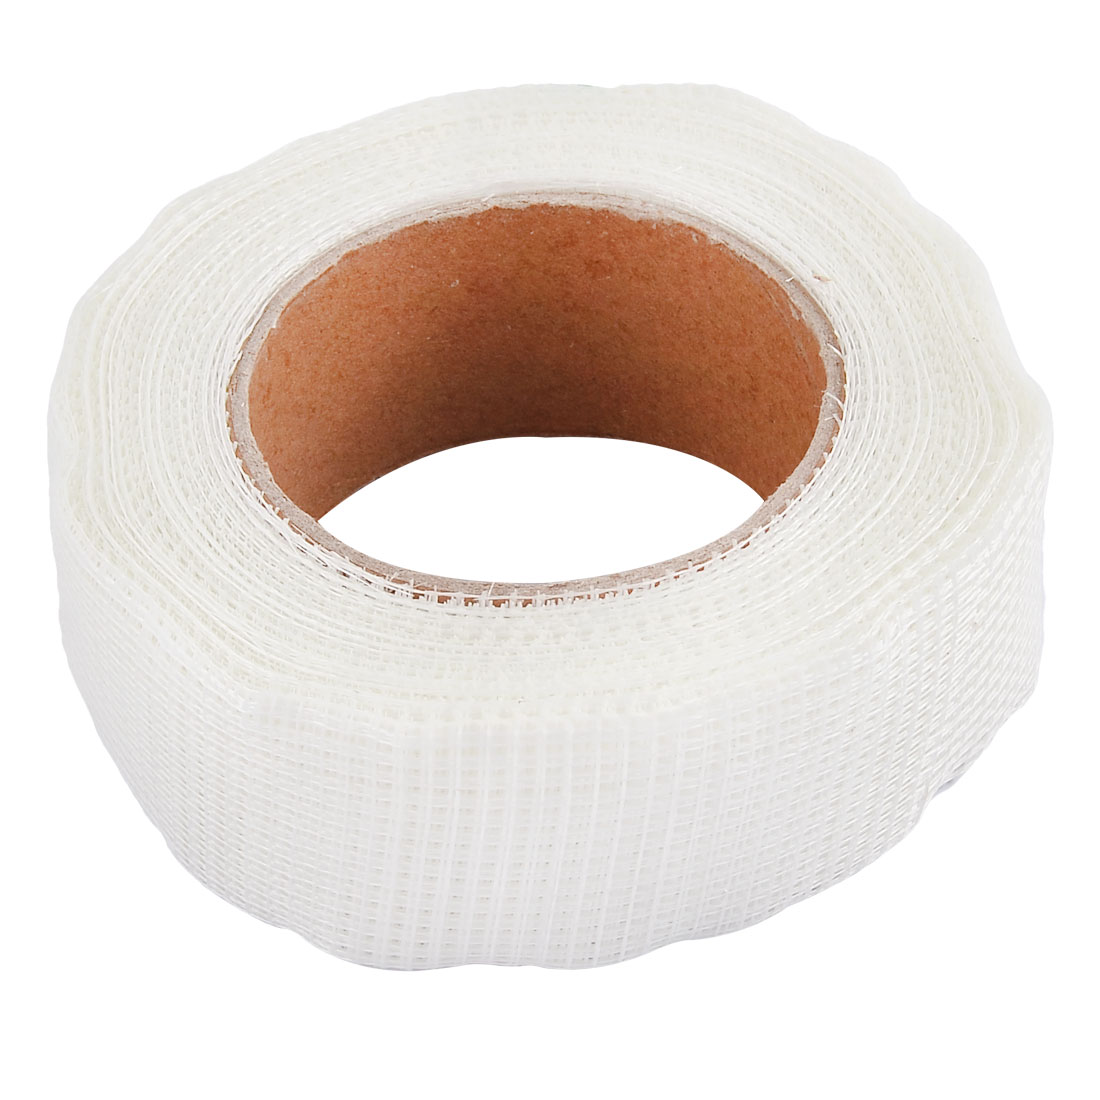 Sheetrock Drywall Fiberglass Cloth Mesh Joint Tape Roll Off White 13.5cm Dia